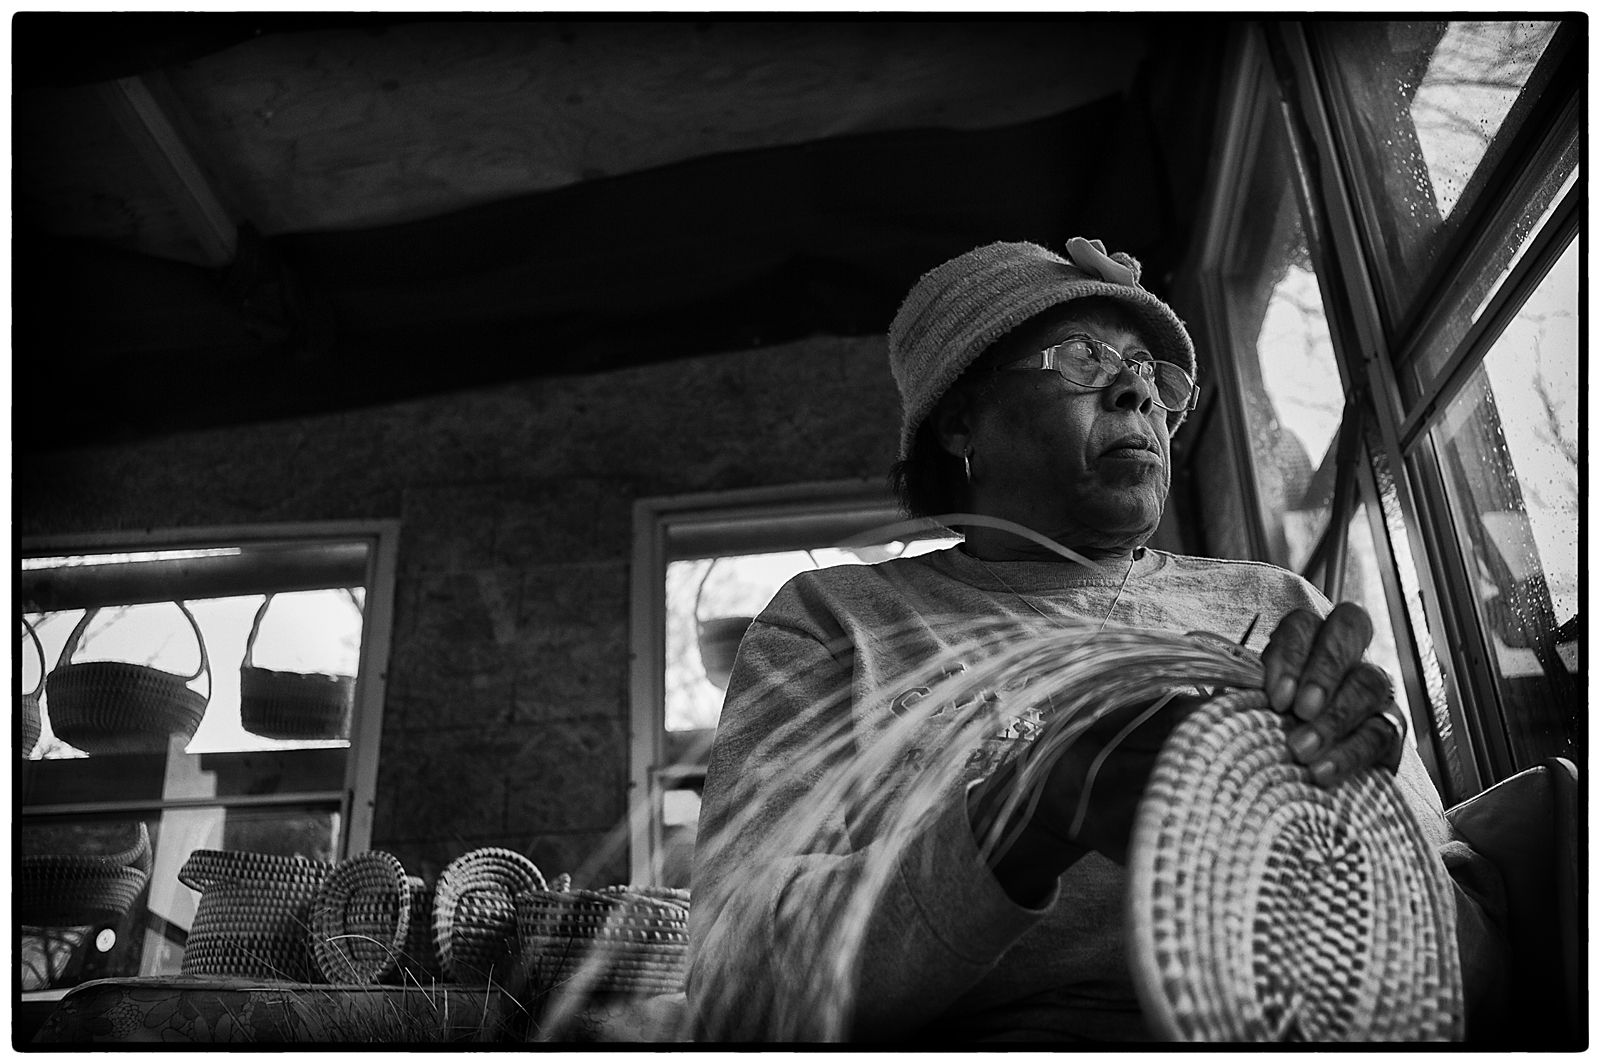 Alma Washington, 76, sews sweetgrass baskets in her stand along Highway 17 in Mt. Pleasant. Sweetgrass basketmaking has been part of the Charleston and Mt. Pleasant communities for over 300 years. Basketmaking is a traditional Gullah art form which has been passed on from generation to generation. It is considered one of the oldest art forms of African origin in the United States.